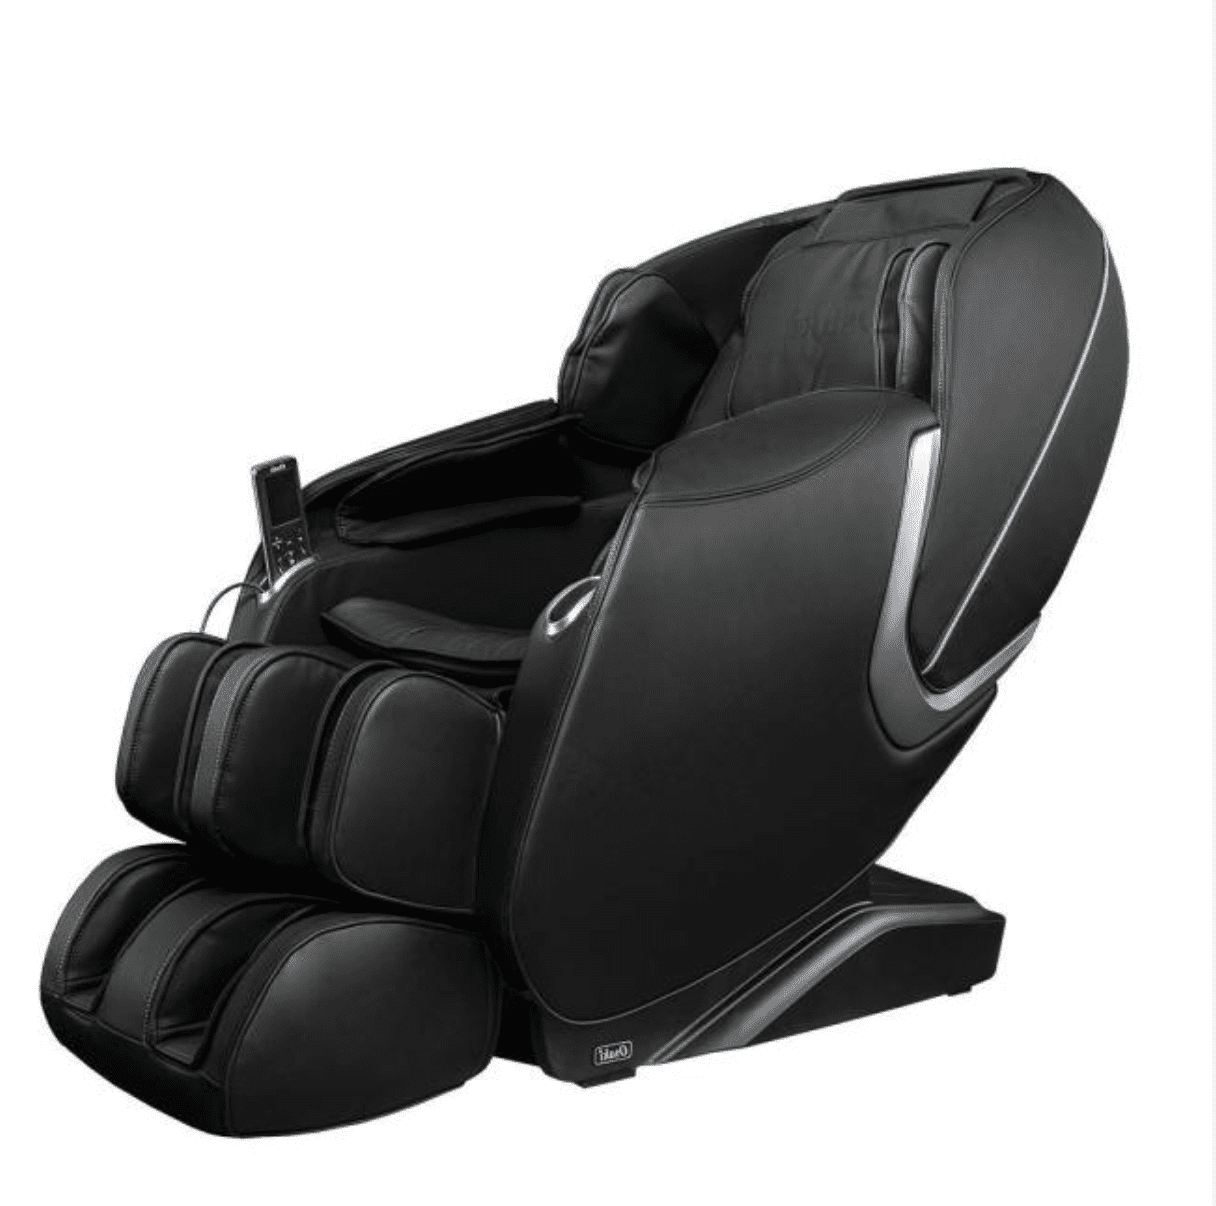 Titan Osaki OS-Aster Black Massage Chair for 49.